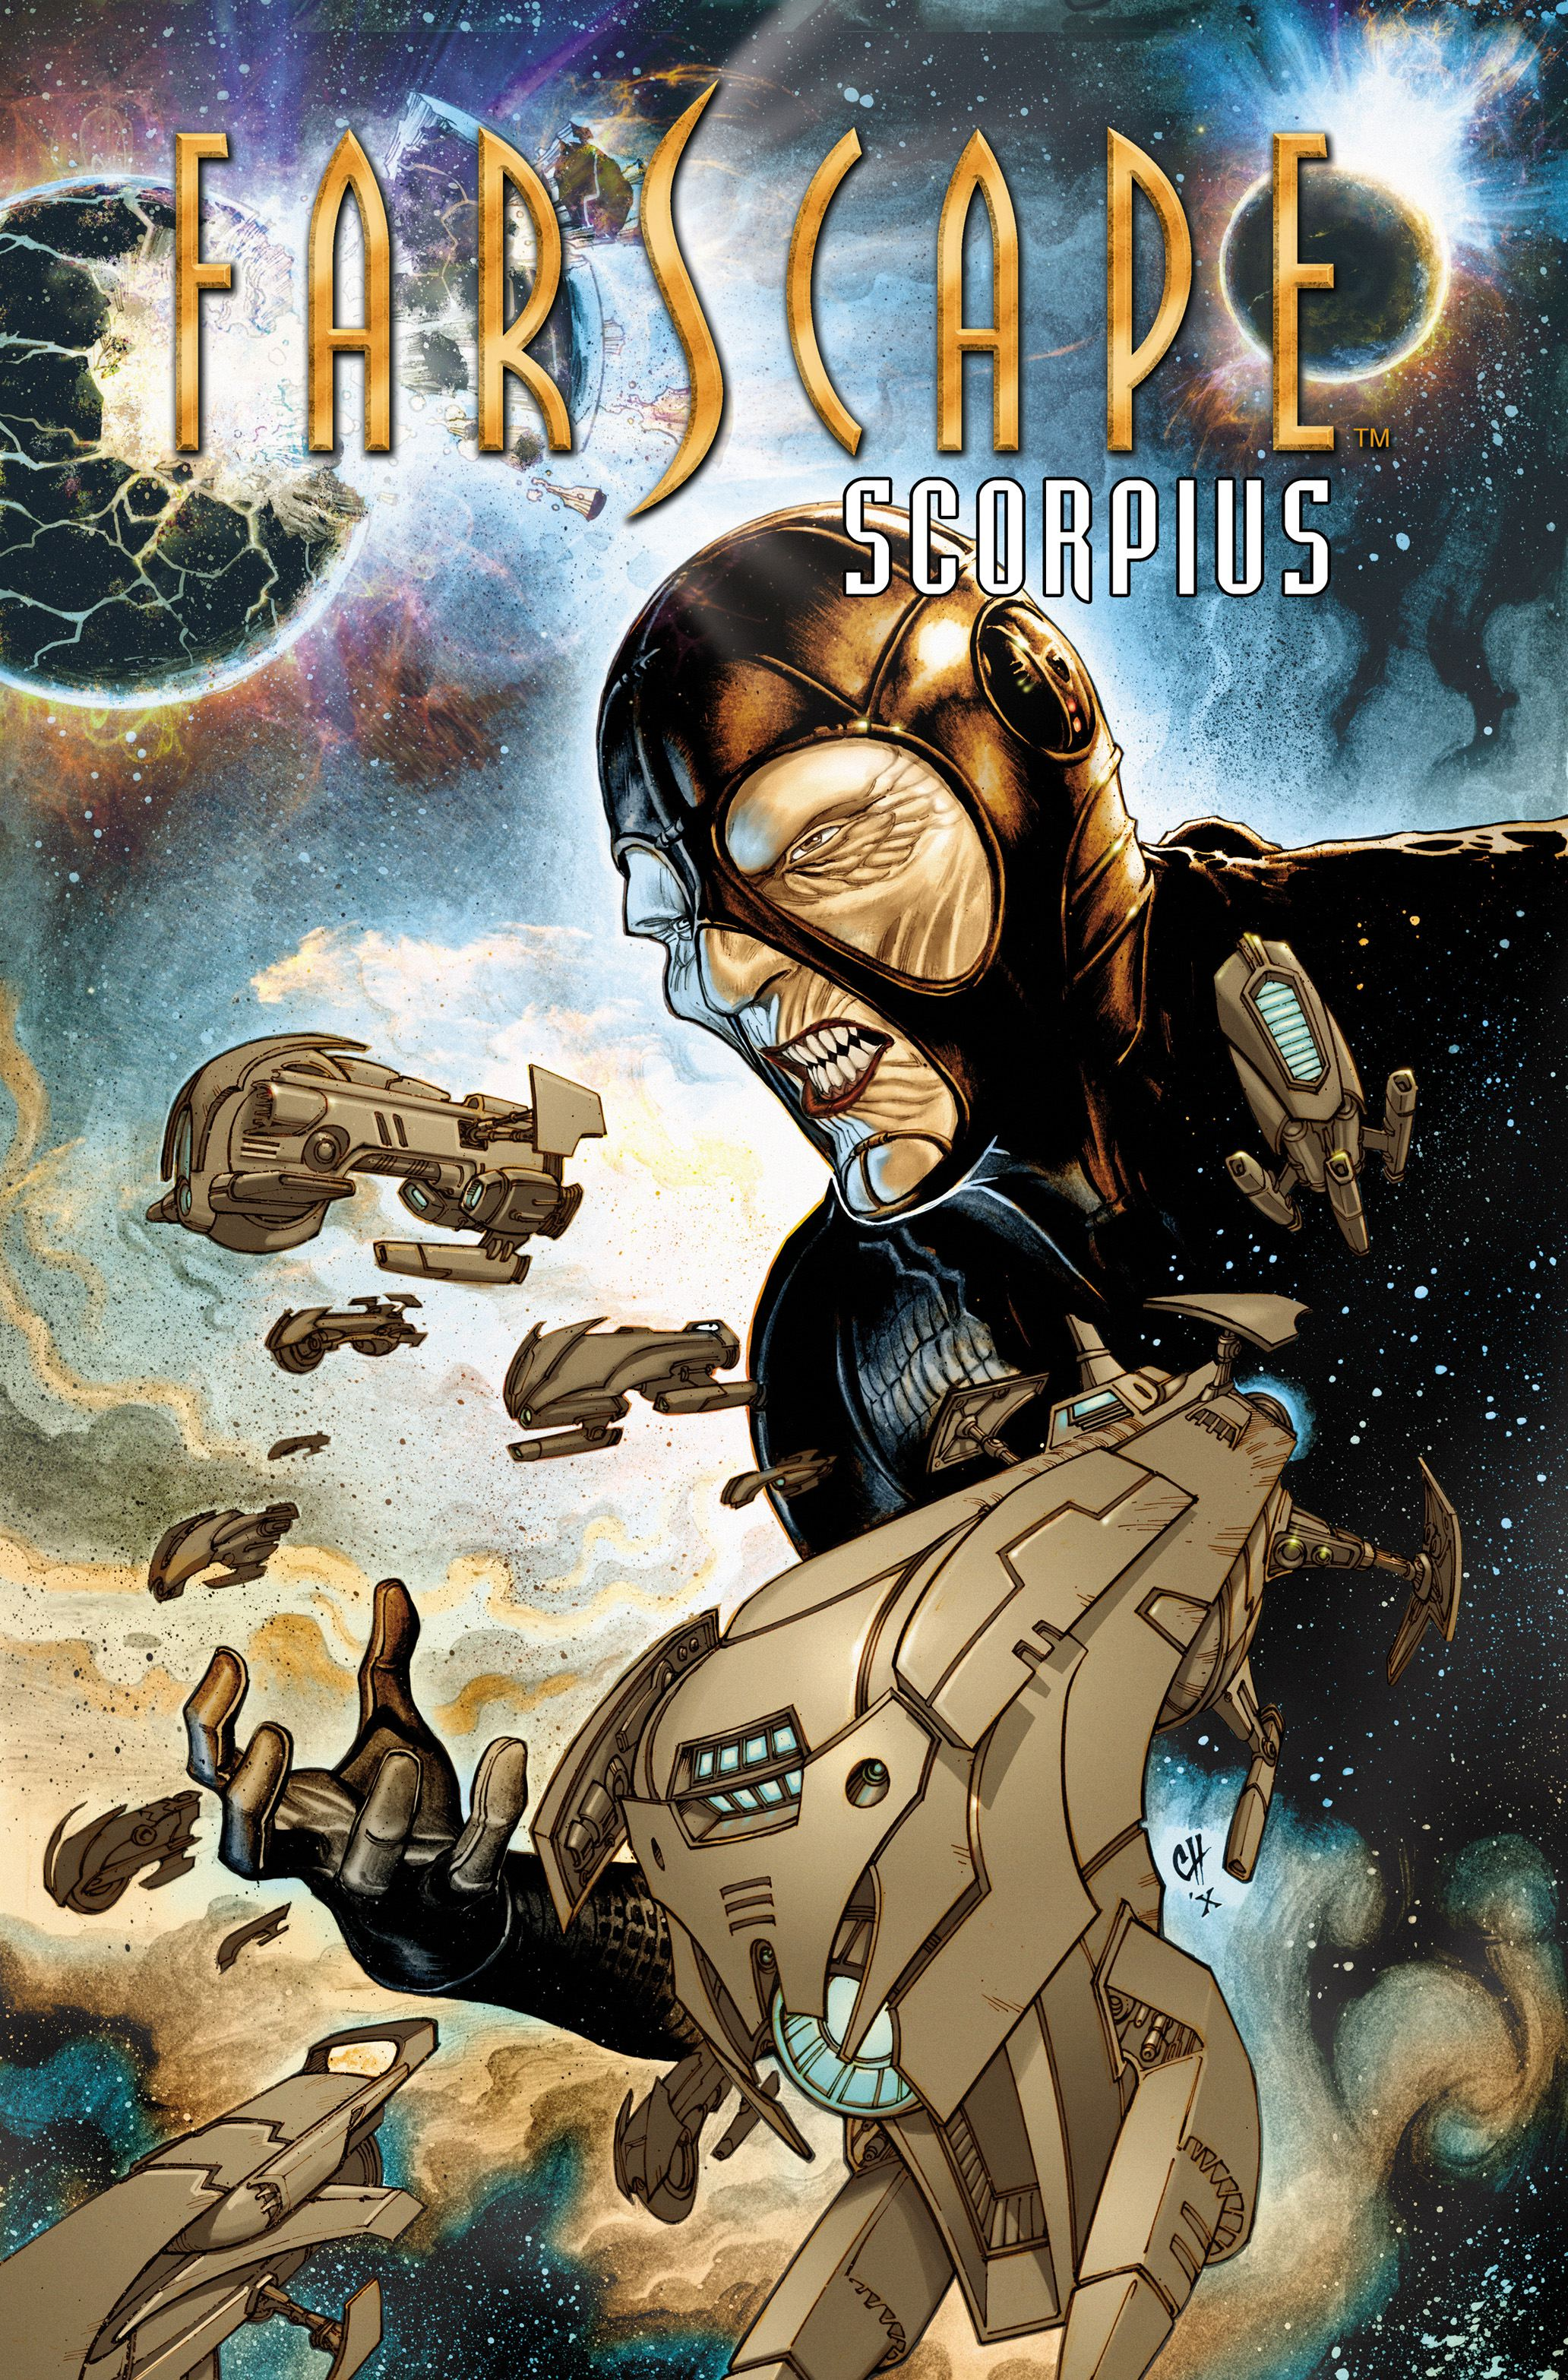 Farscape scorpius vol 2 9781608866175 hr